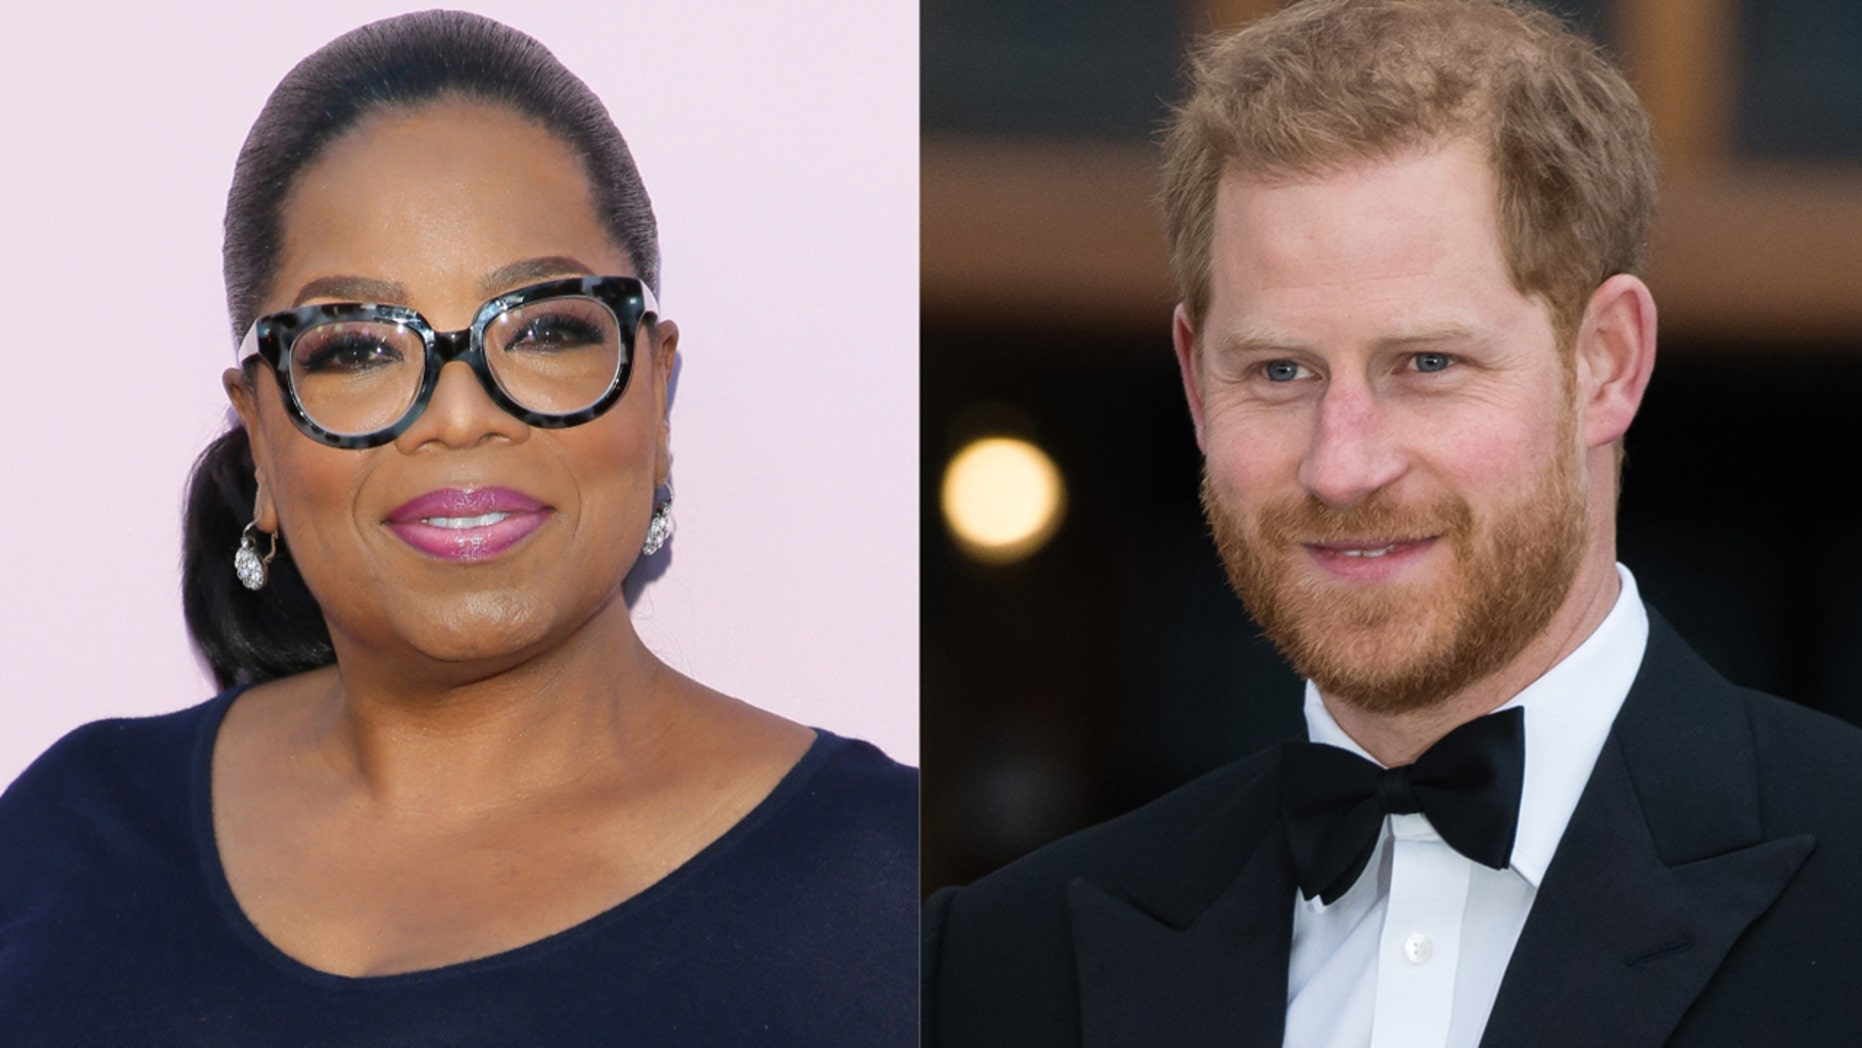 Prince Harry will be partnering with Oprah Winfrey to create a documentary series on mental health for Apple's new streaming service.